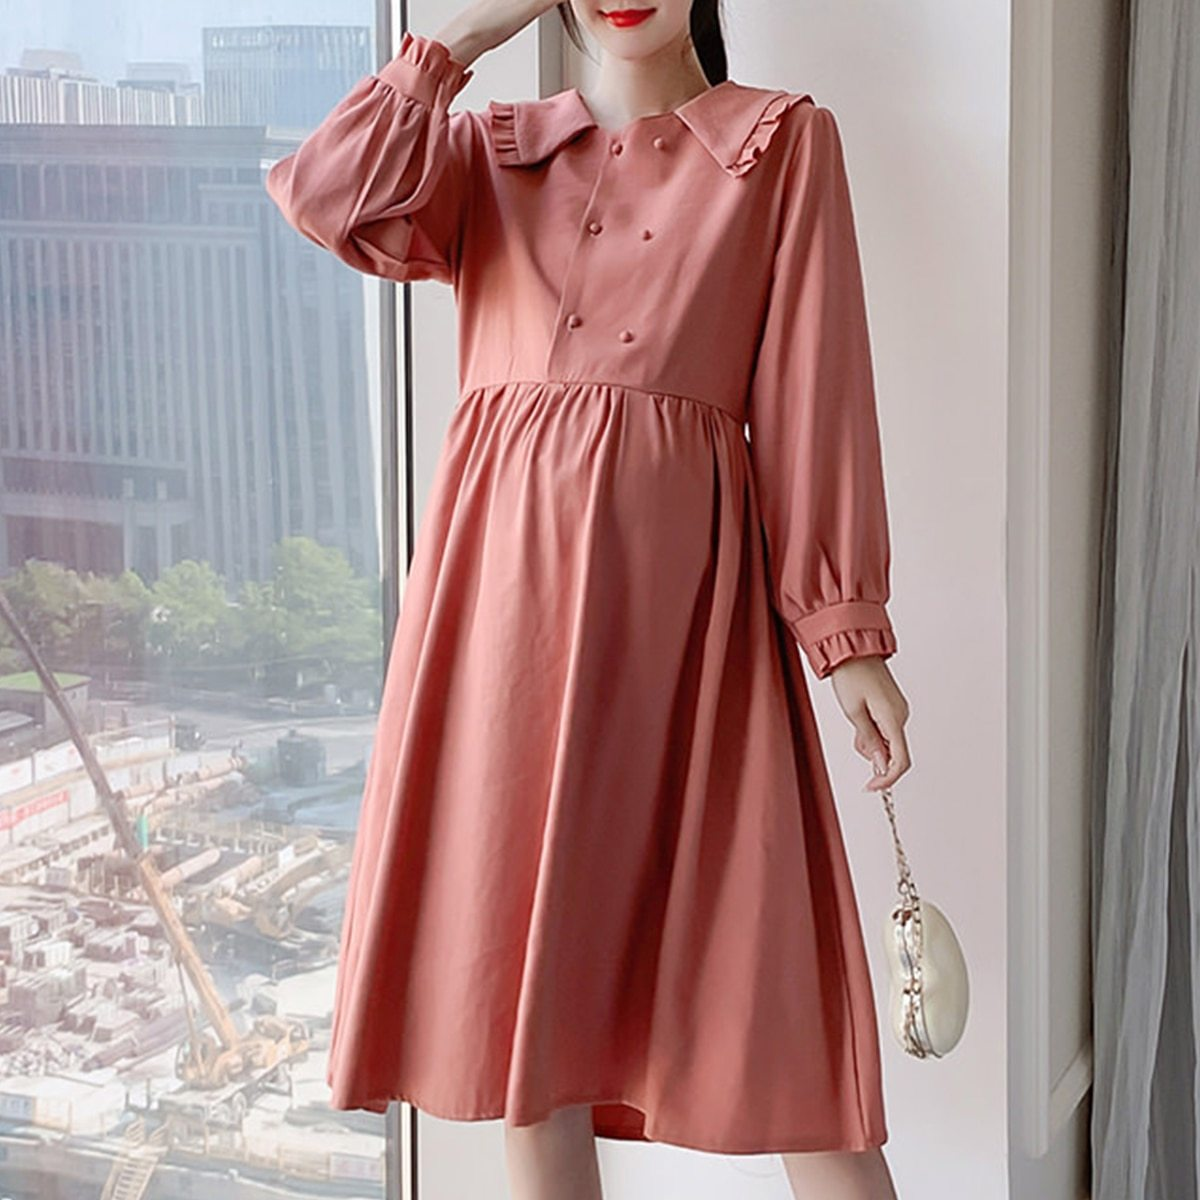 Maternity Dress Long Sleeve Solid Color Loose Dress image 4